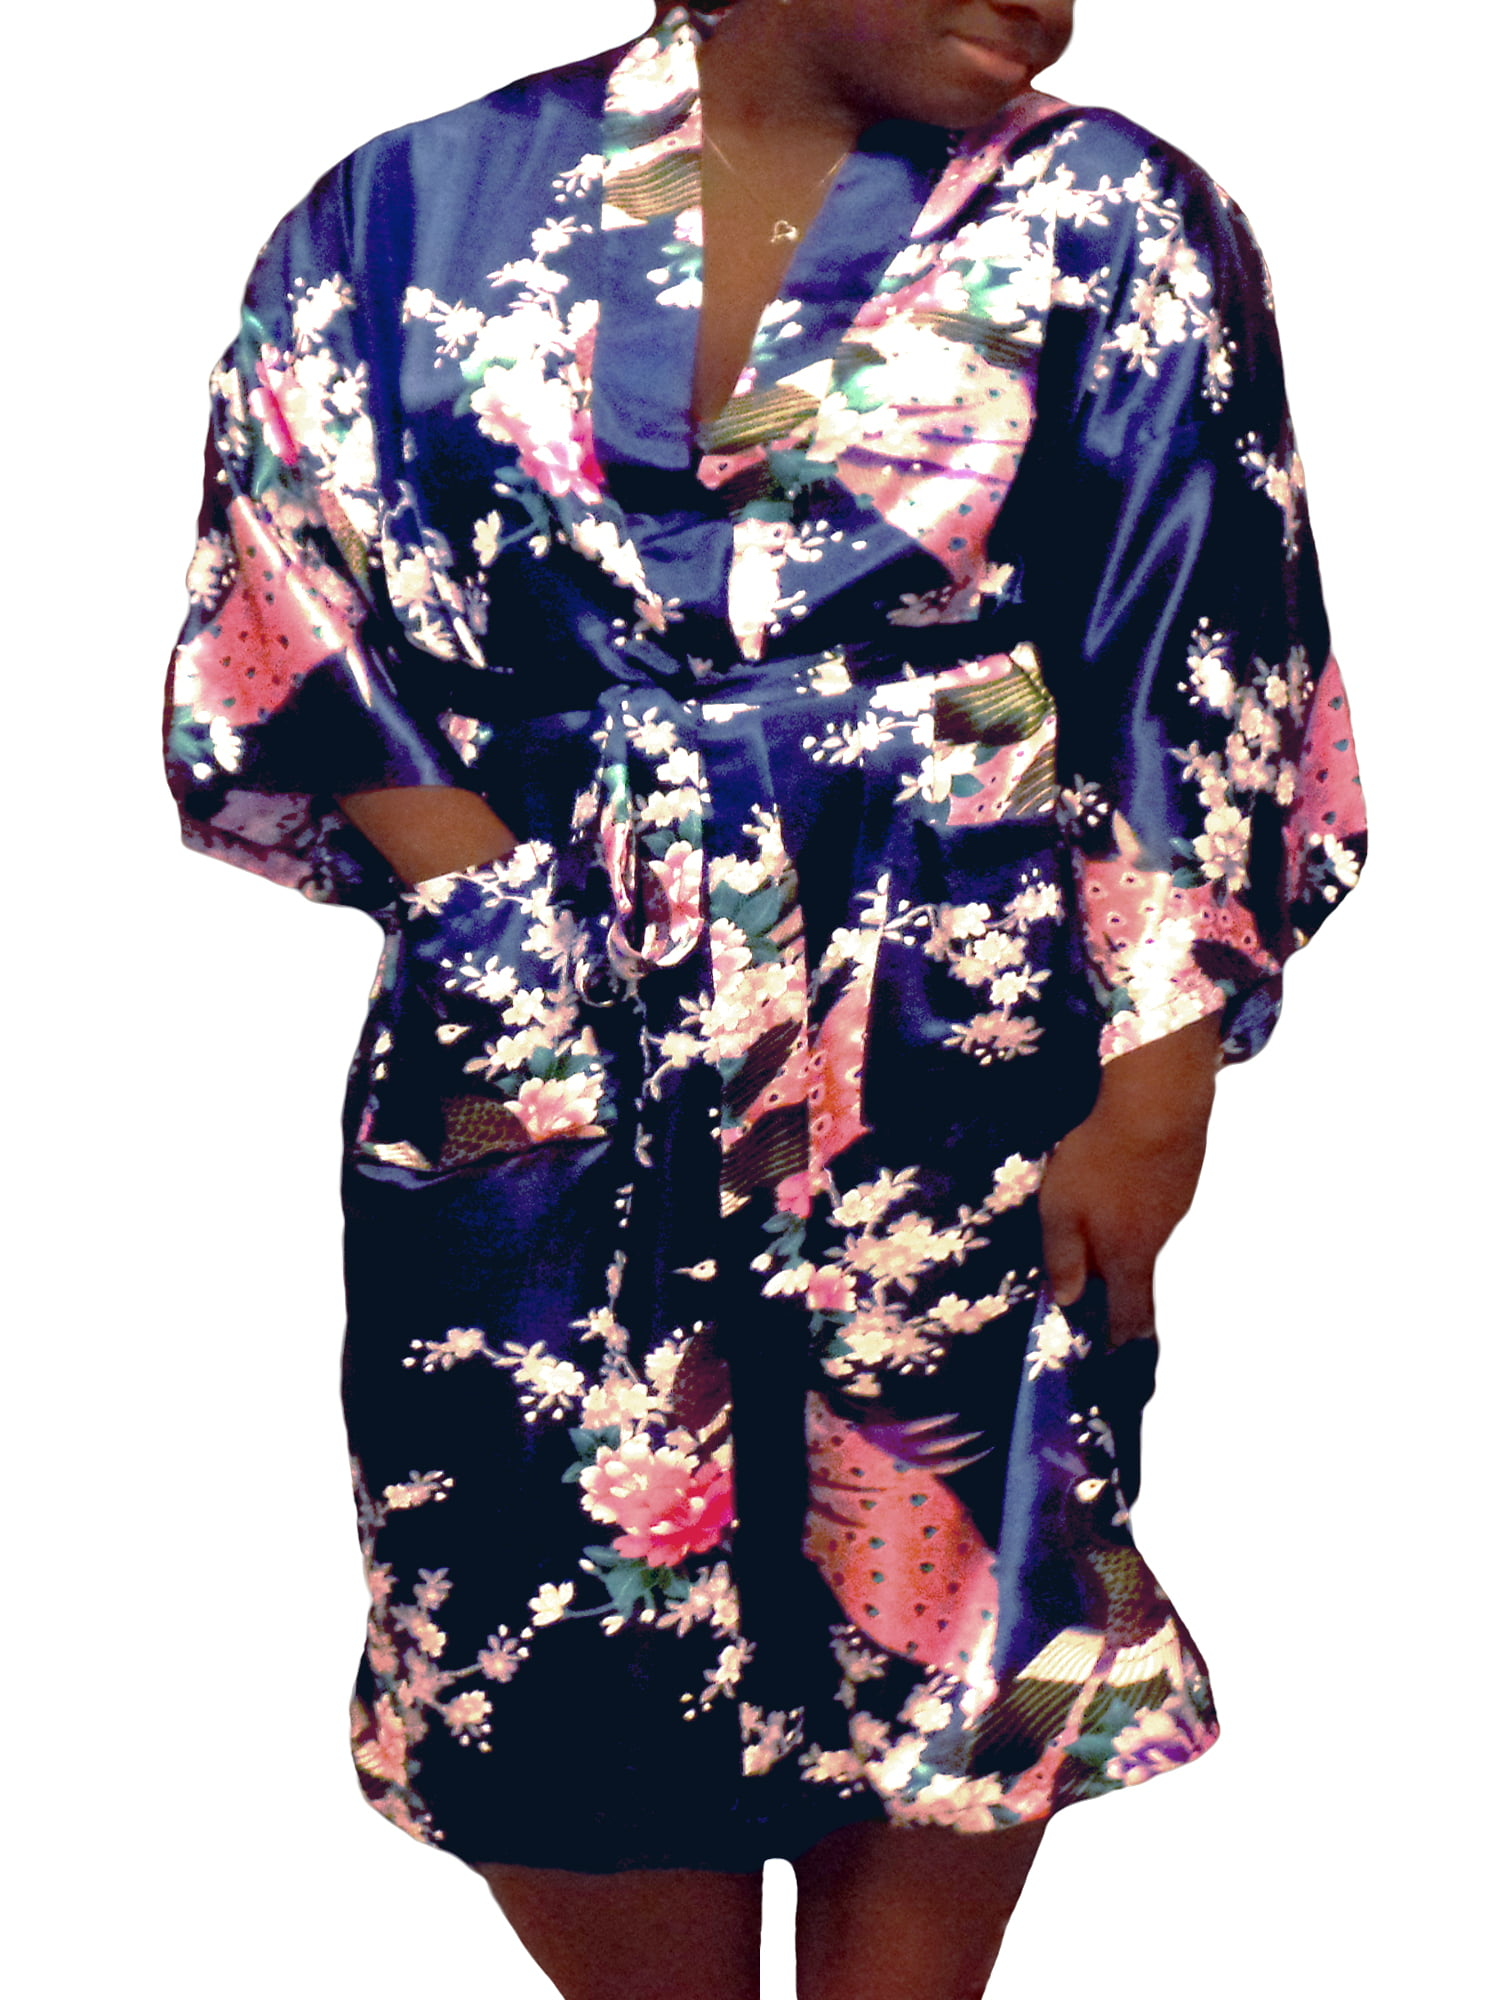 Fedey Floral Satin Womens Plus Size Robes Sizes 20 38 Lightweight Sleepwear Robe Kimono Knee Length Walmart Com Walmart Com